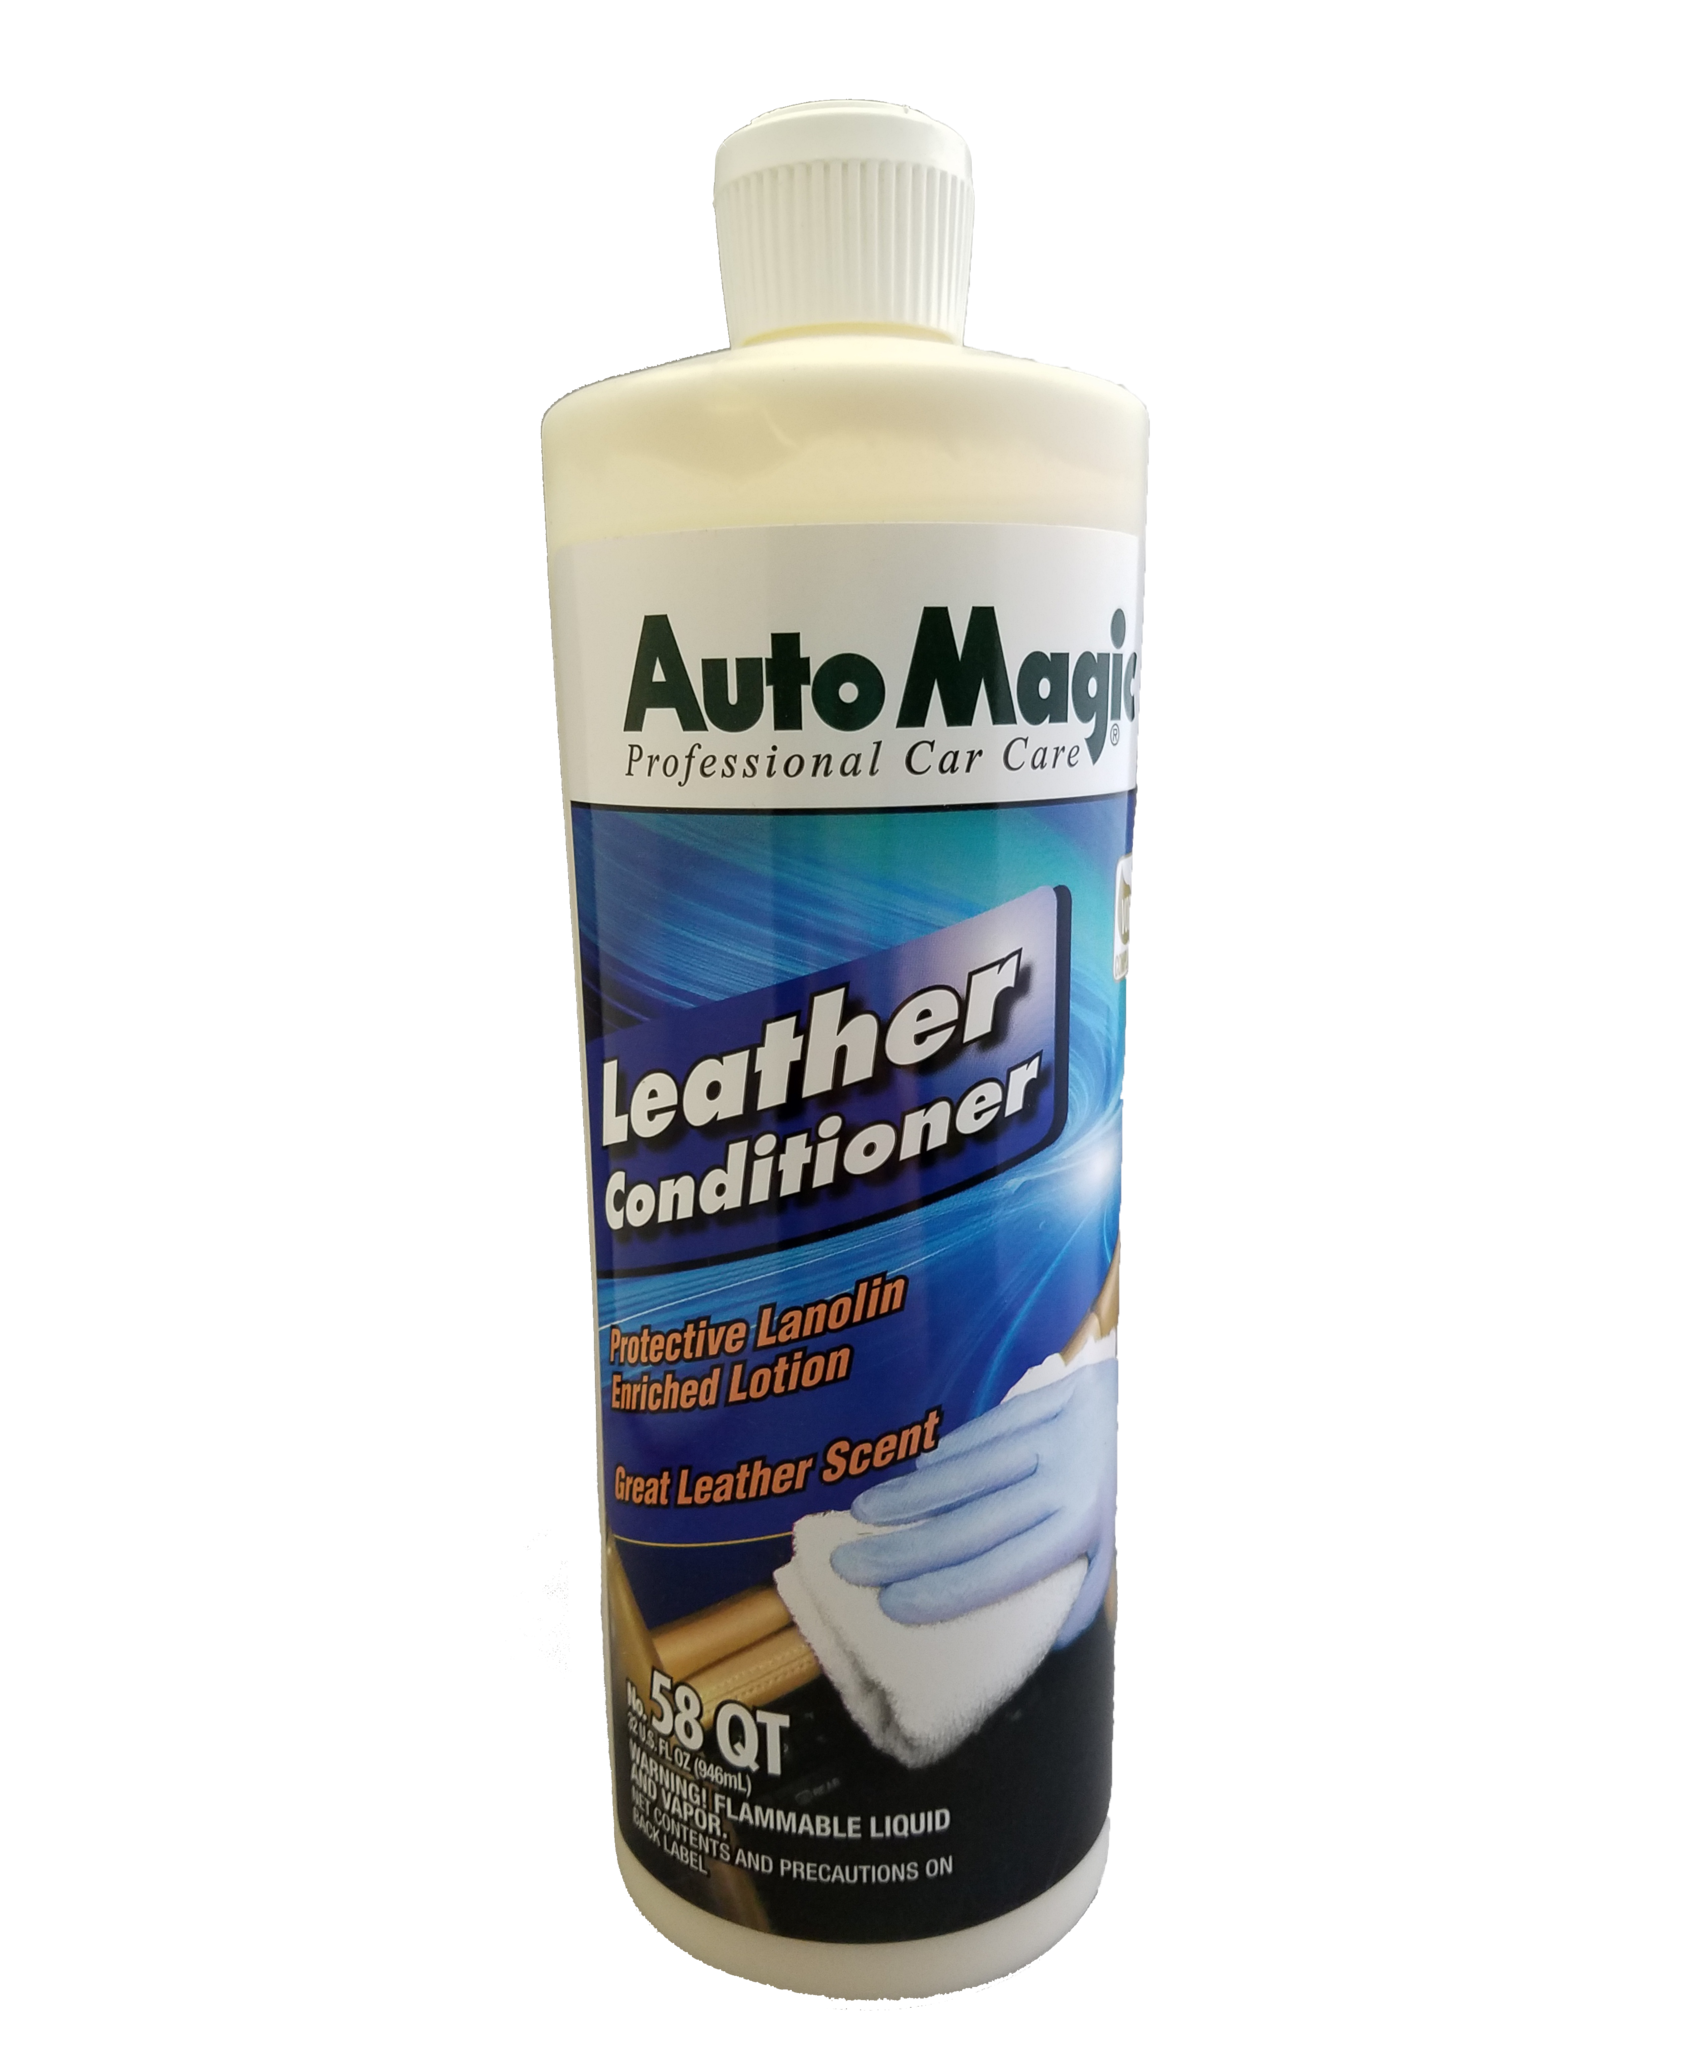 Auto Magic Leather Conditioner with Lanolin 32 oz.